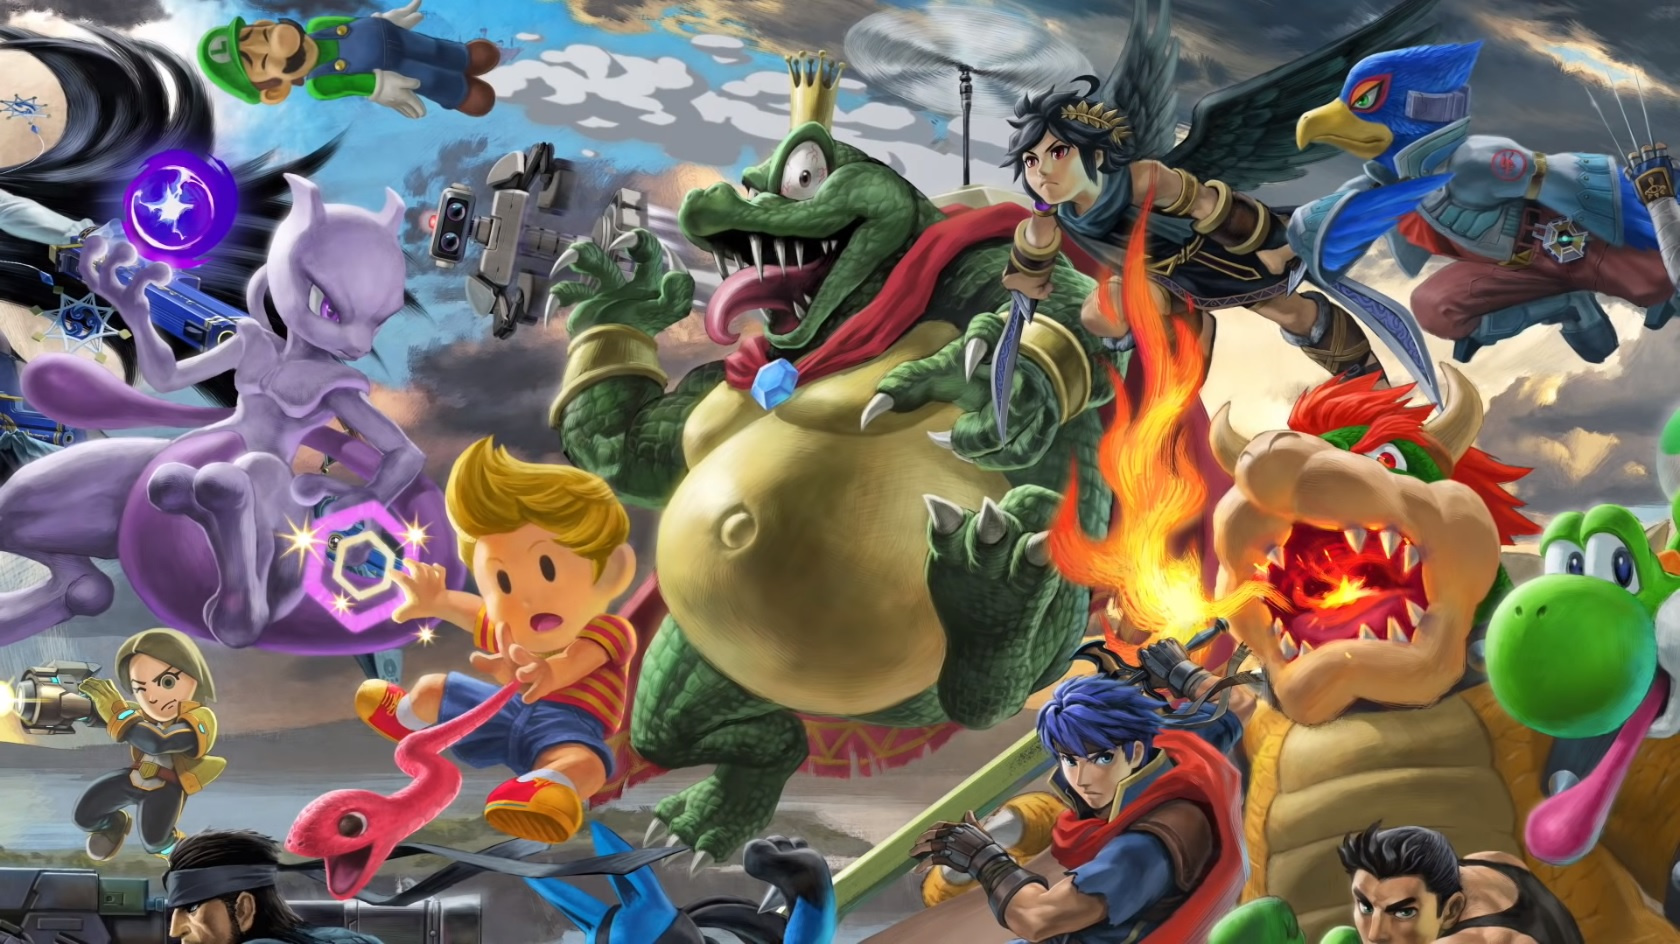 Locked Character Roster In Smash Bros  Ultimate Raises Concerns